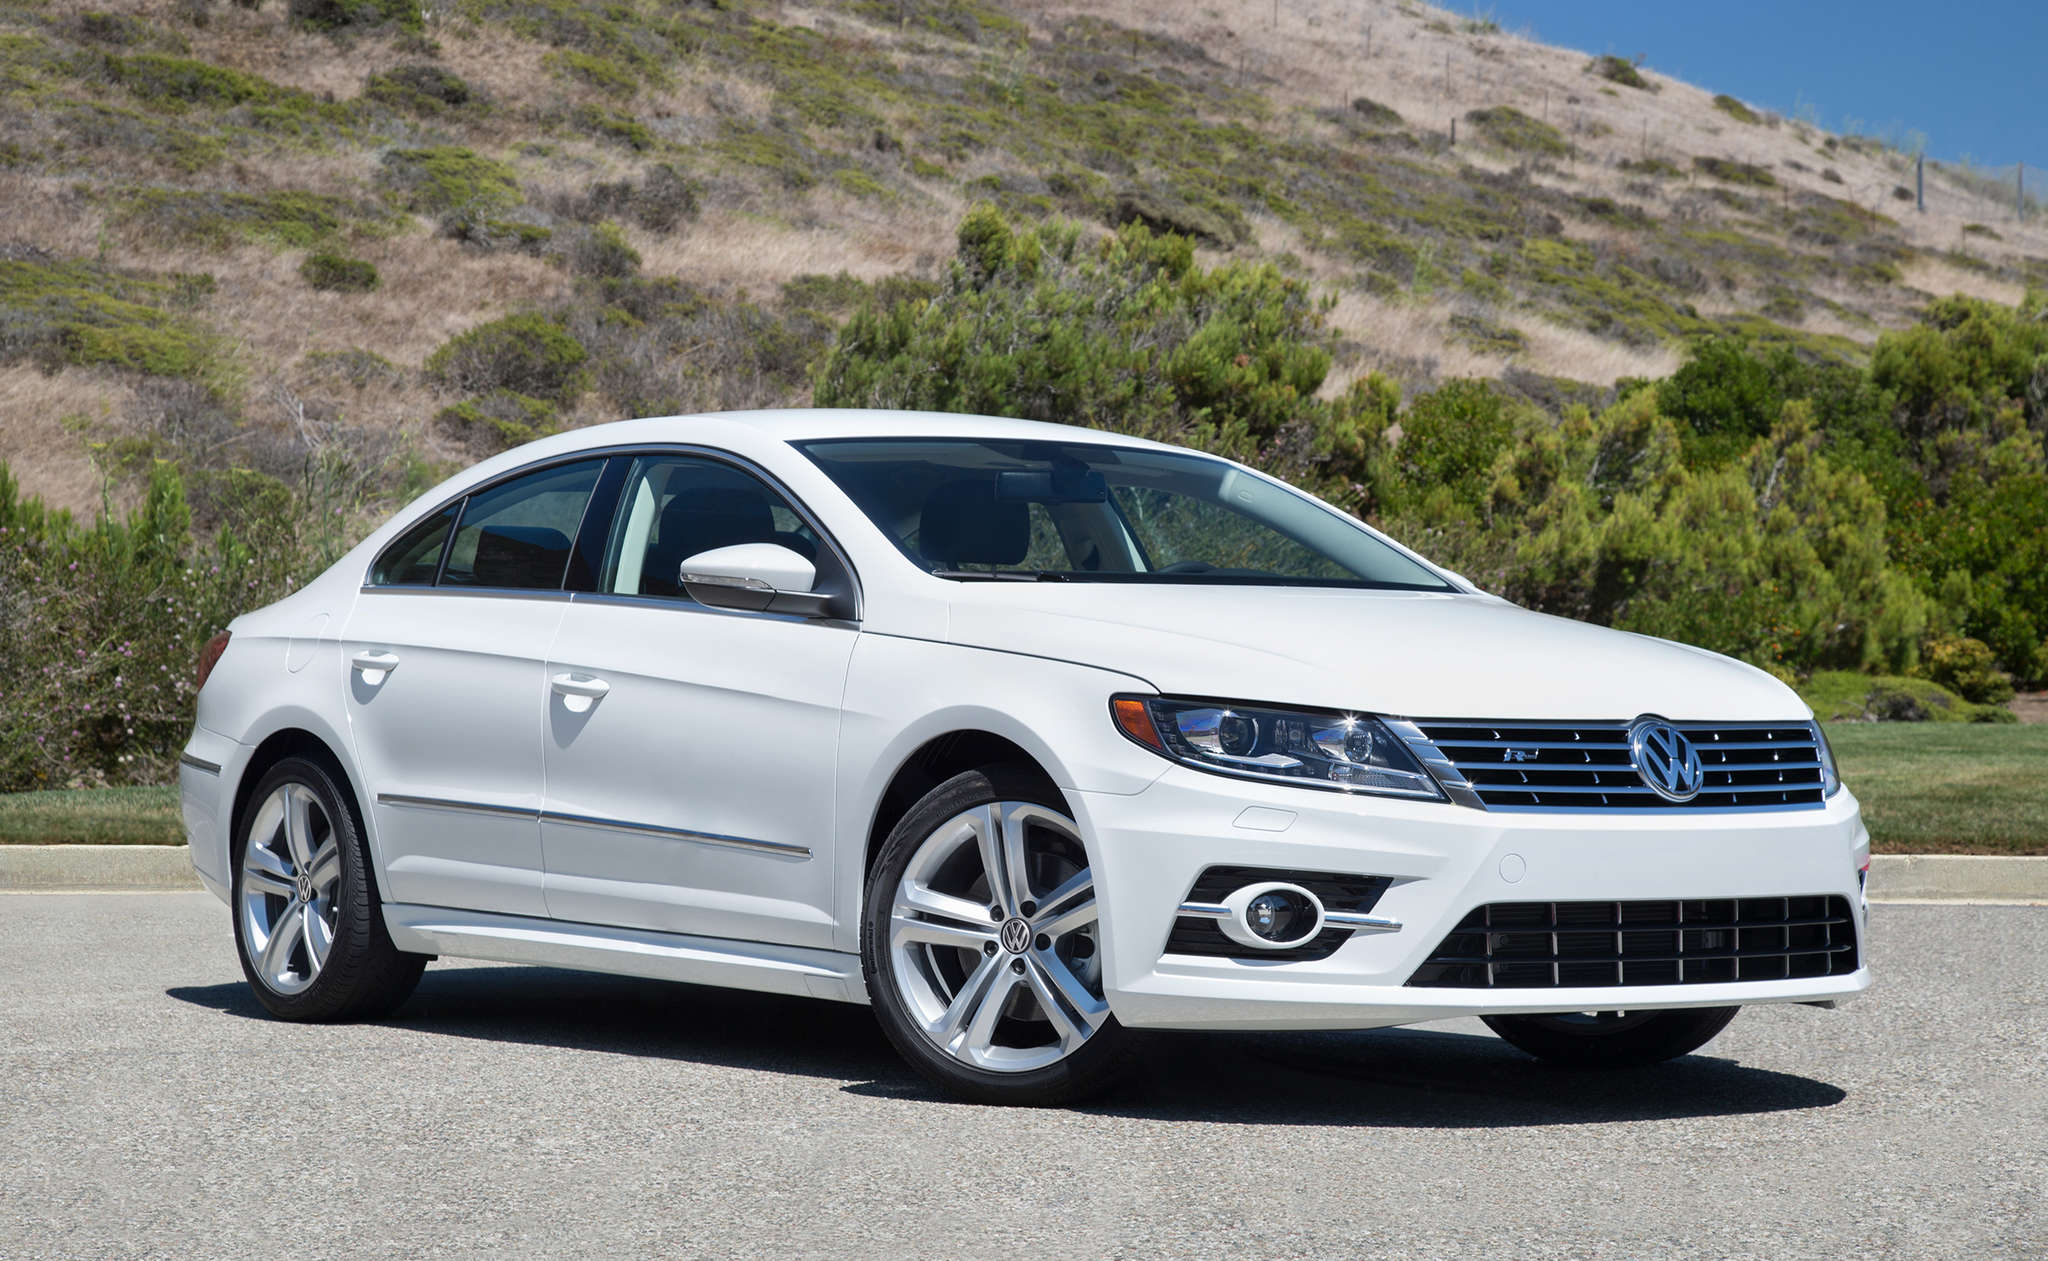 The 2016 Volkswagen CC is among newer models with potential trouble. Still, the experts say it´s better not to disconnect the bags until fixed.